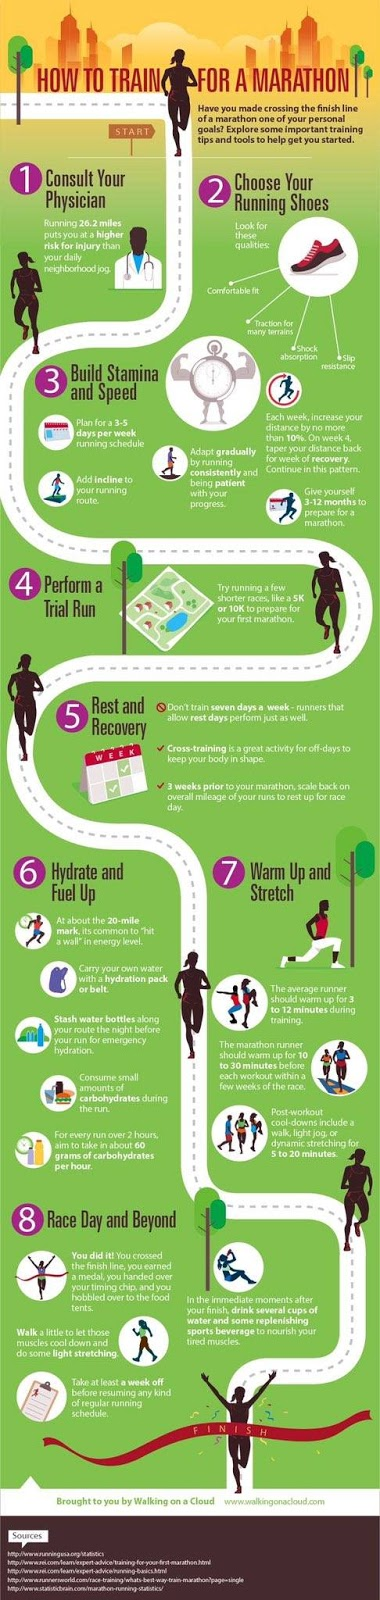 Infographic : How To Train For A Marathon